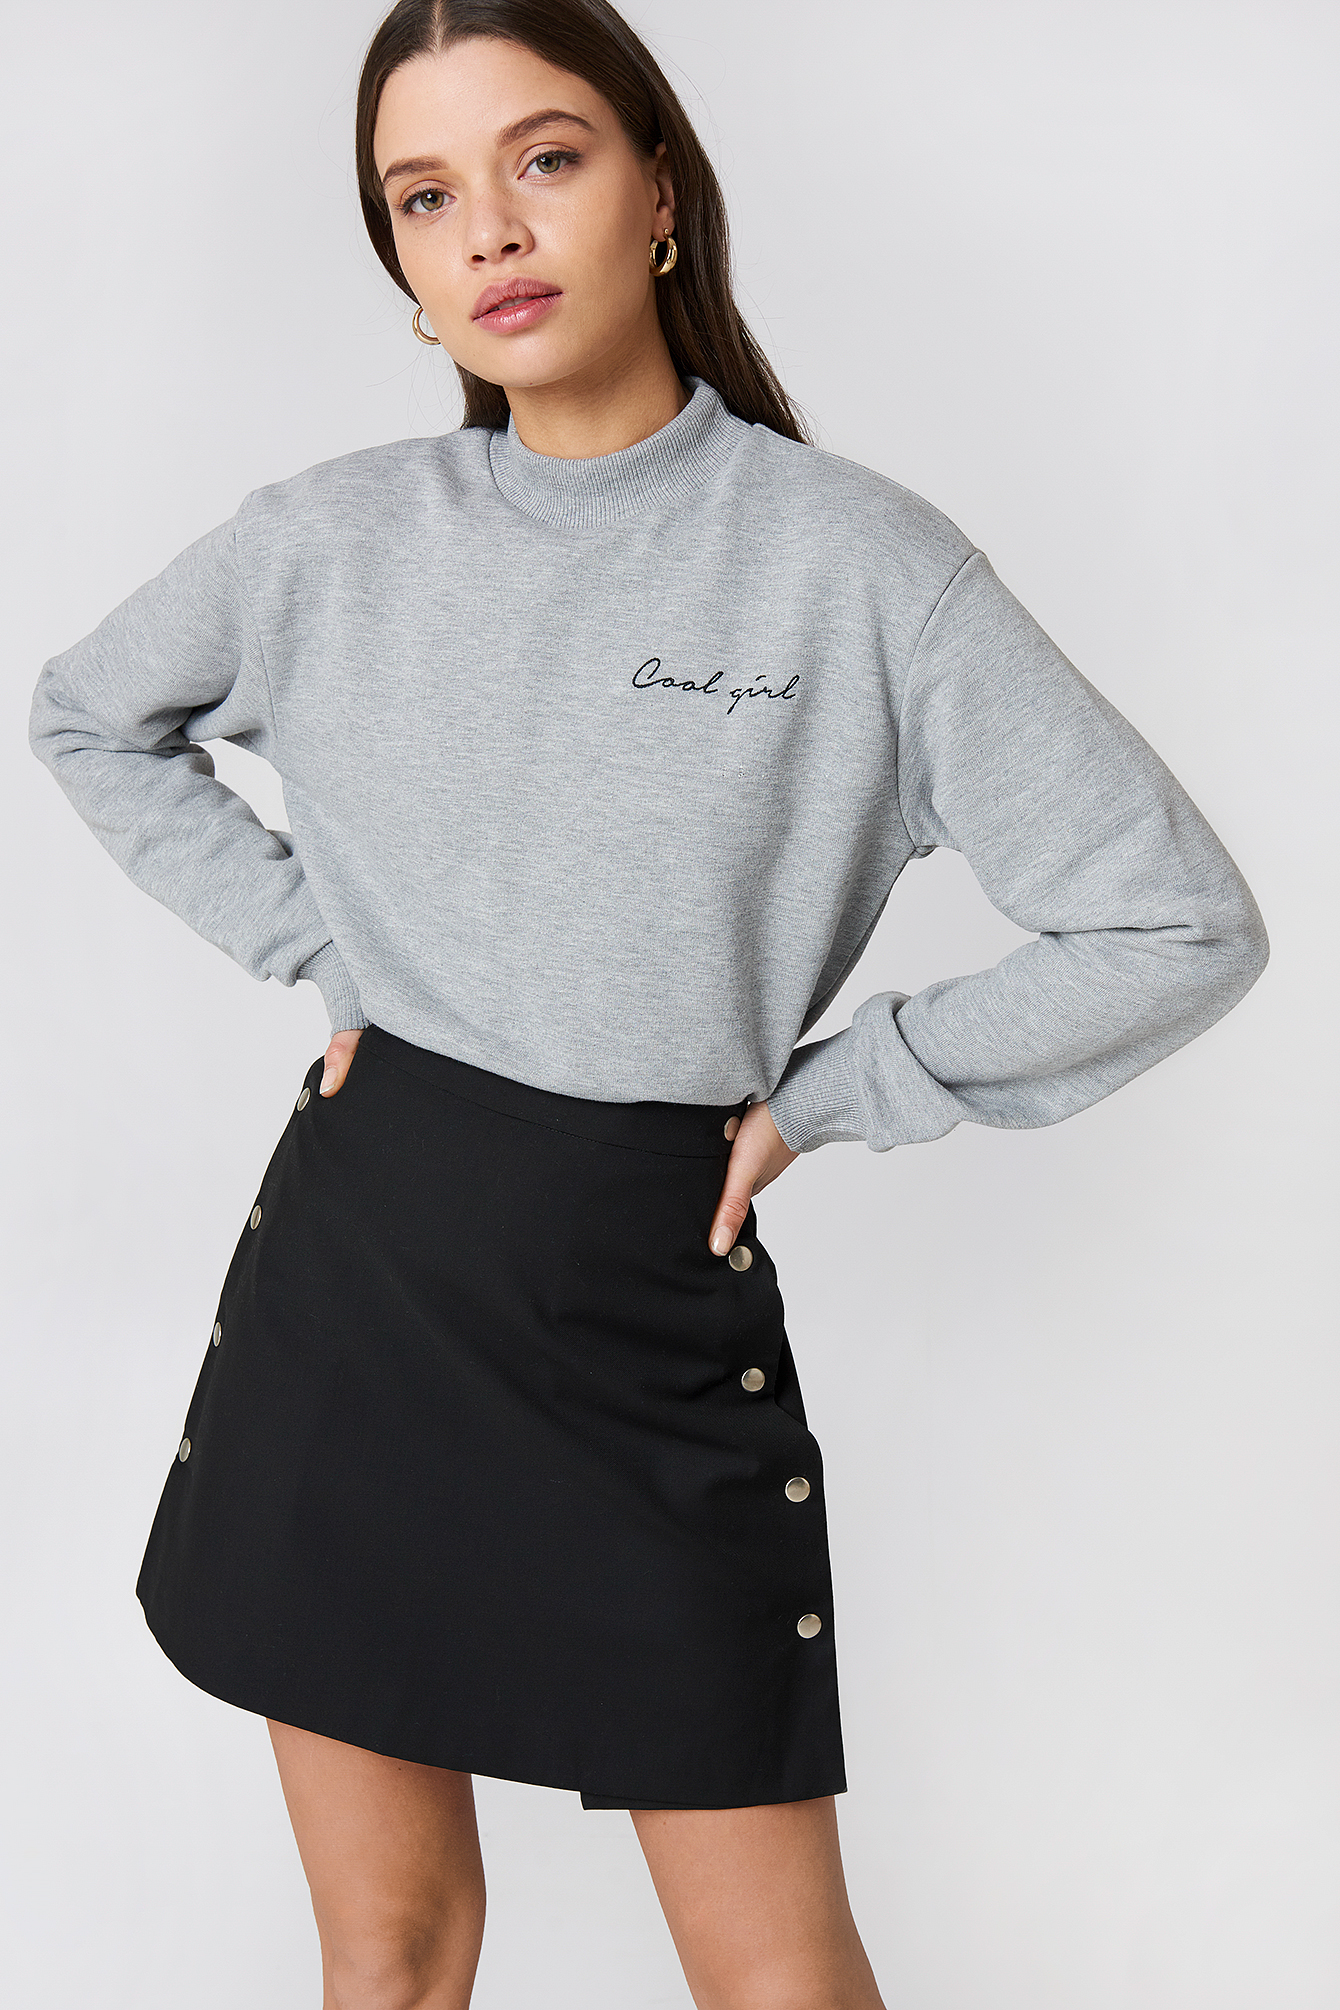 COOL GIRL SWEATSHIRT - GREY